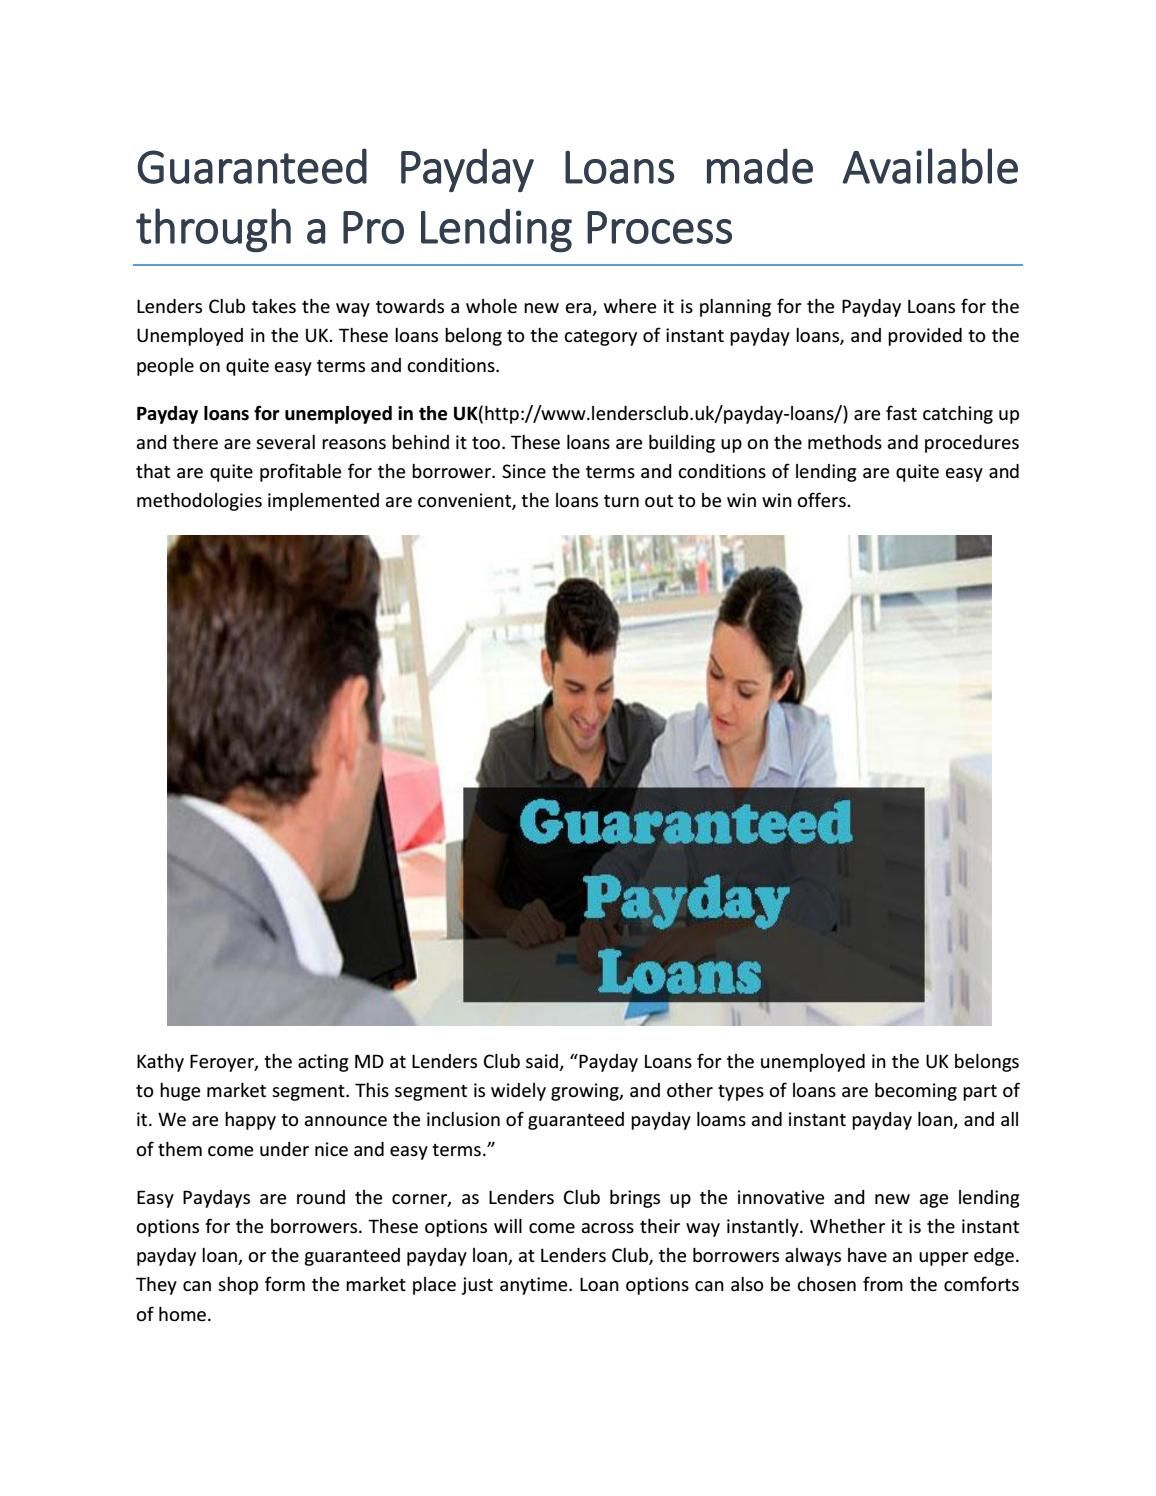 Guaranteed Payday Loans In The Uk Instant Payday Loans Guaranteed Payday Loans Payday Loans